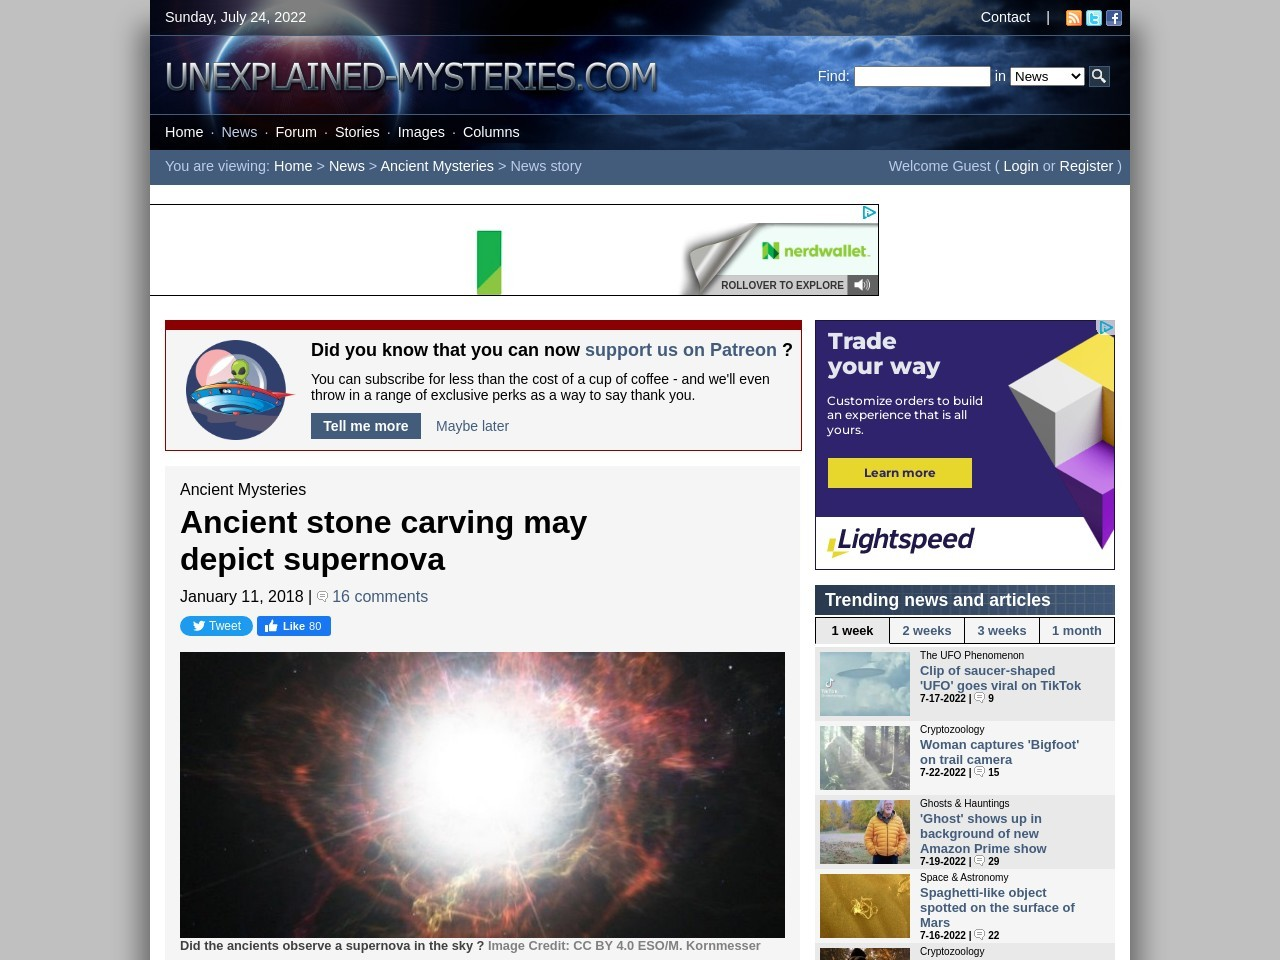 Ancient stone carving may depict supernova